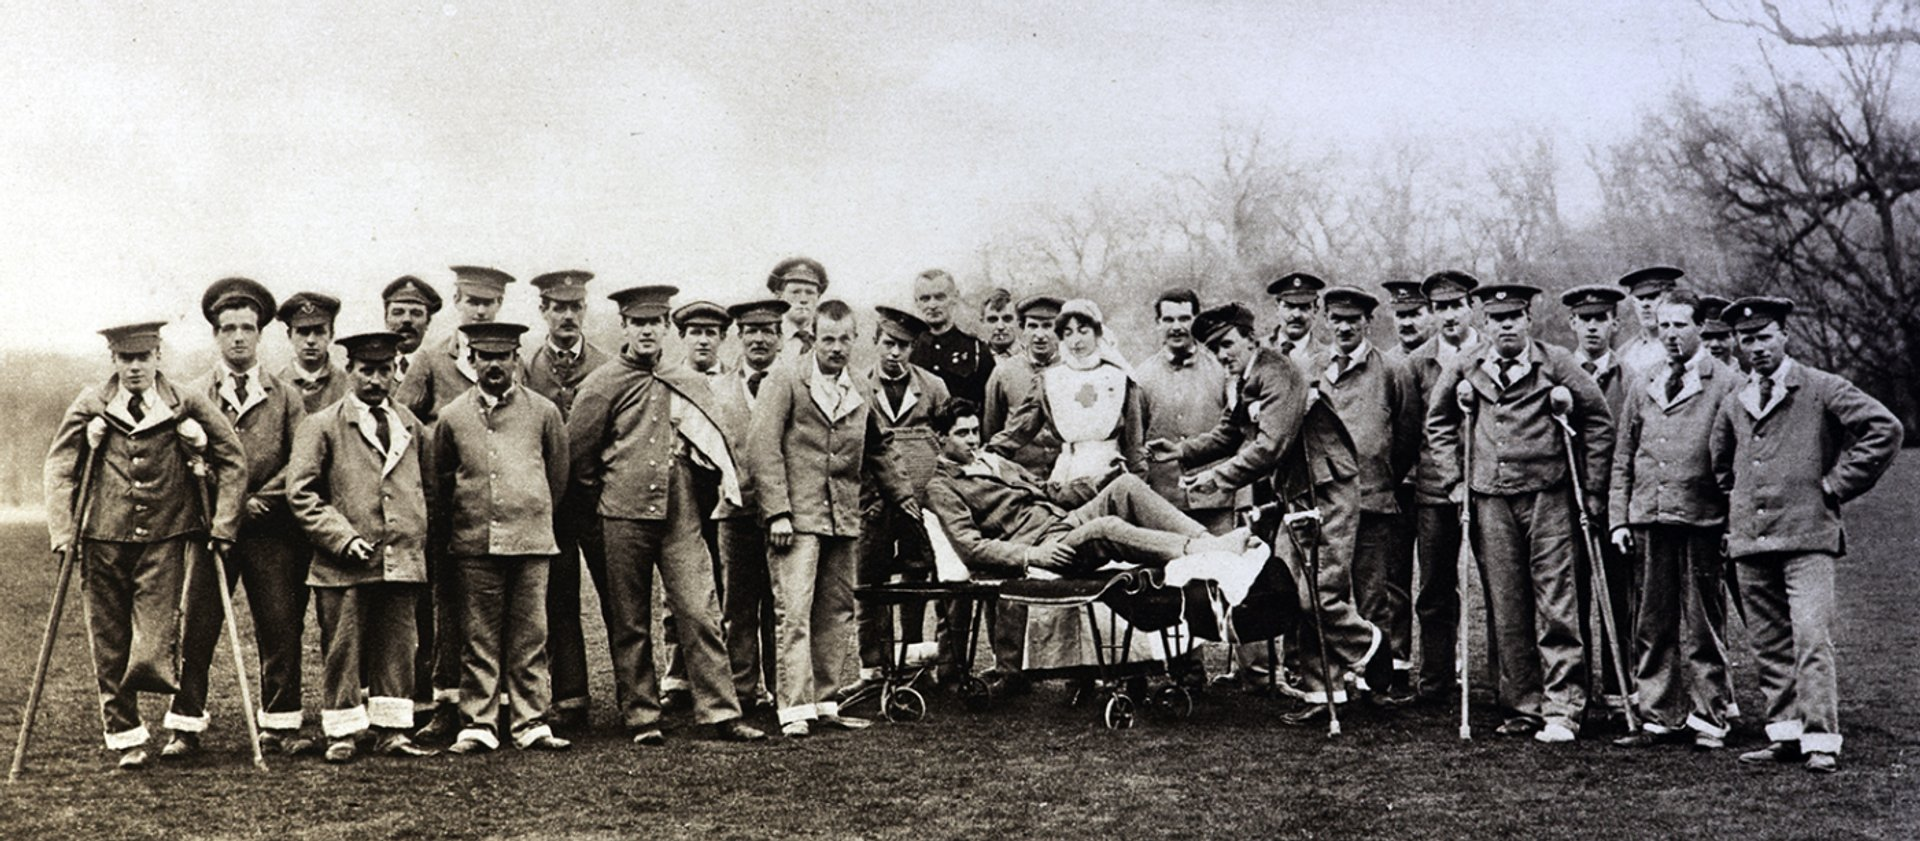 Lady Onslow with hospital patients at Clandon Park (Photo credit: National Trust, Clandon Park)